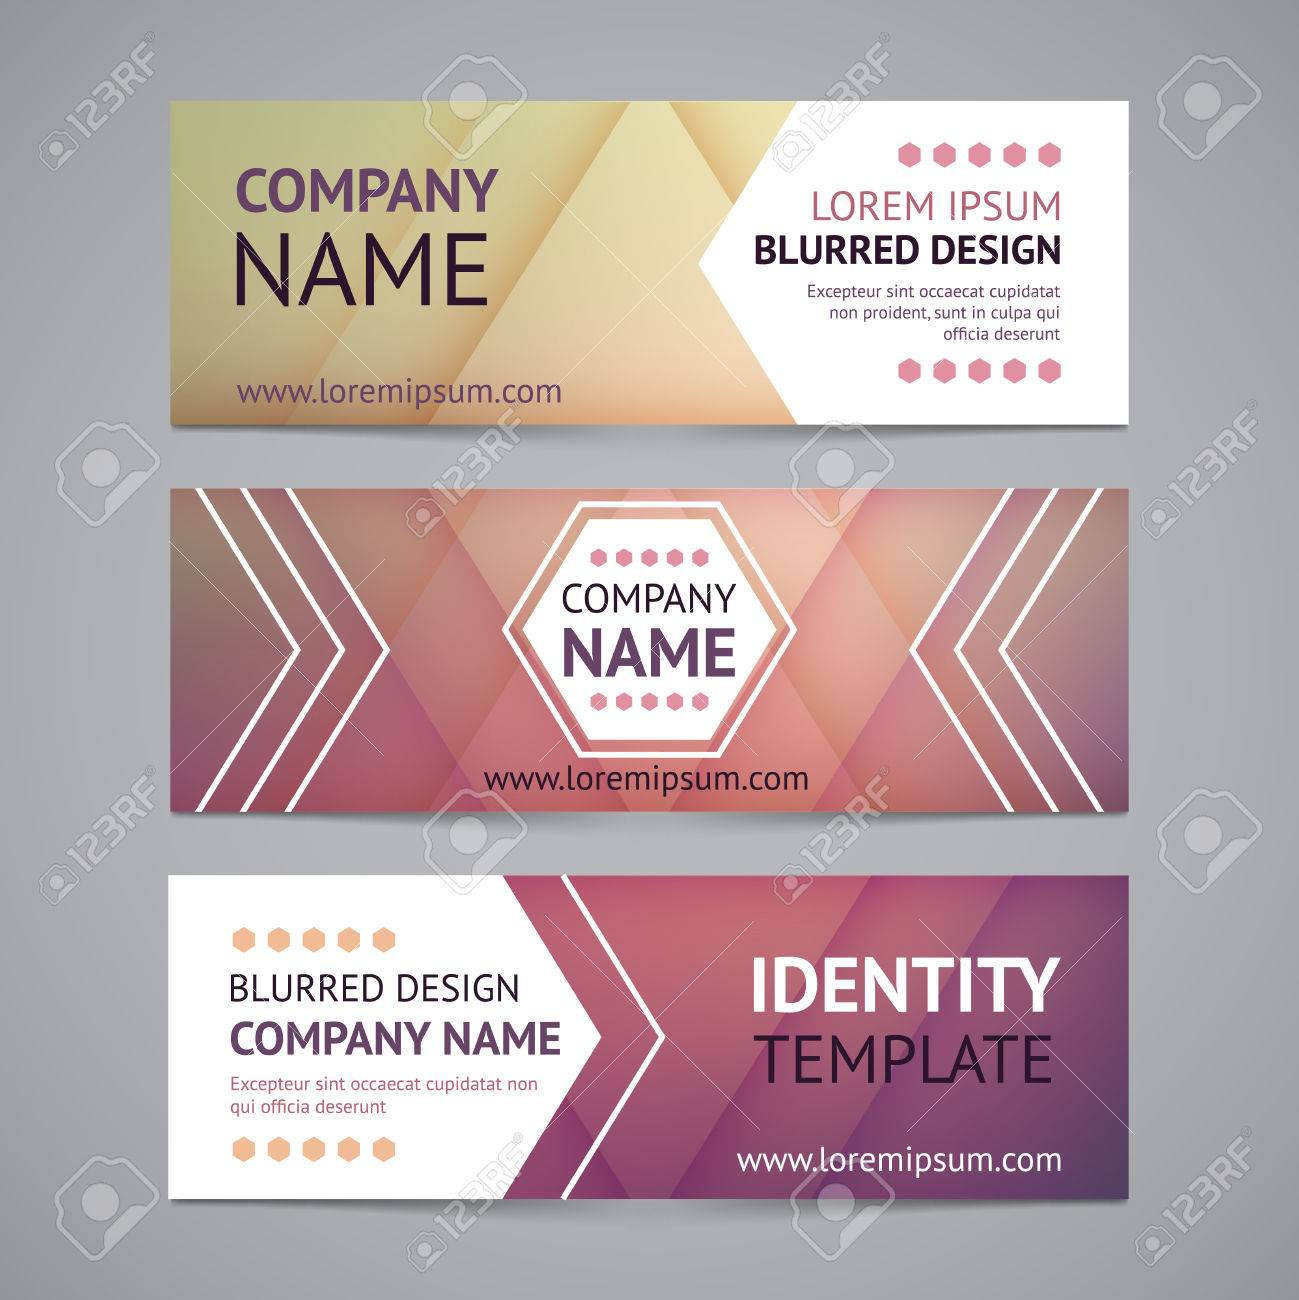 vector company banners with blurred backgrounds royalty free